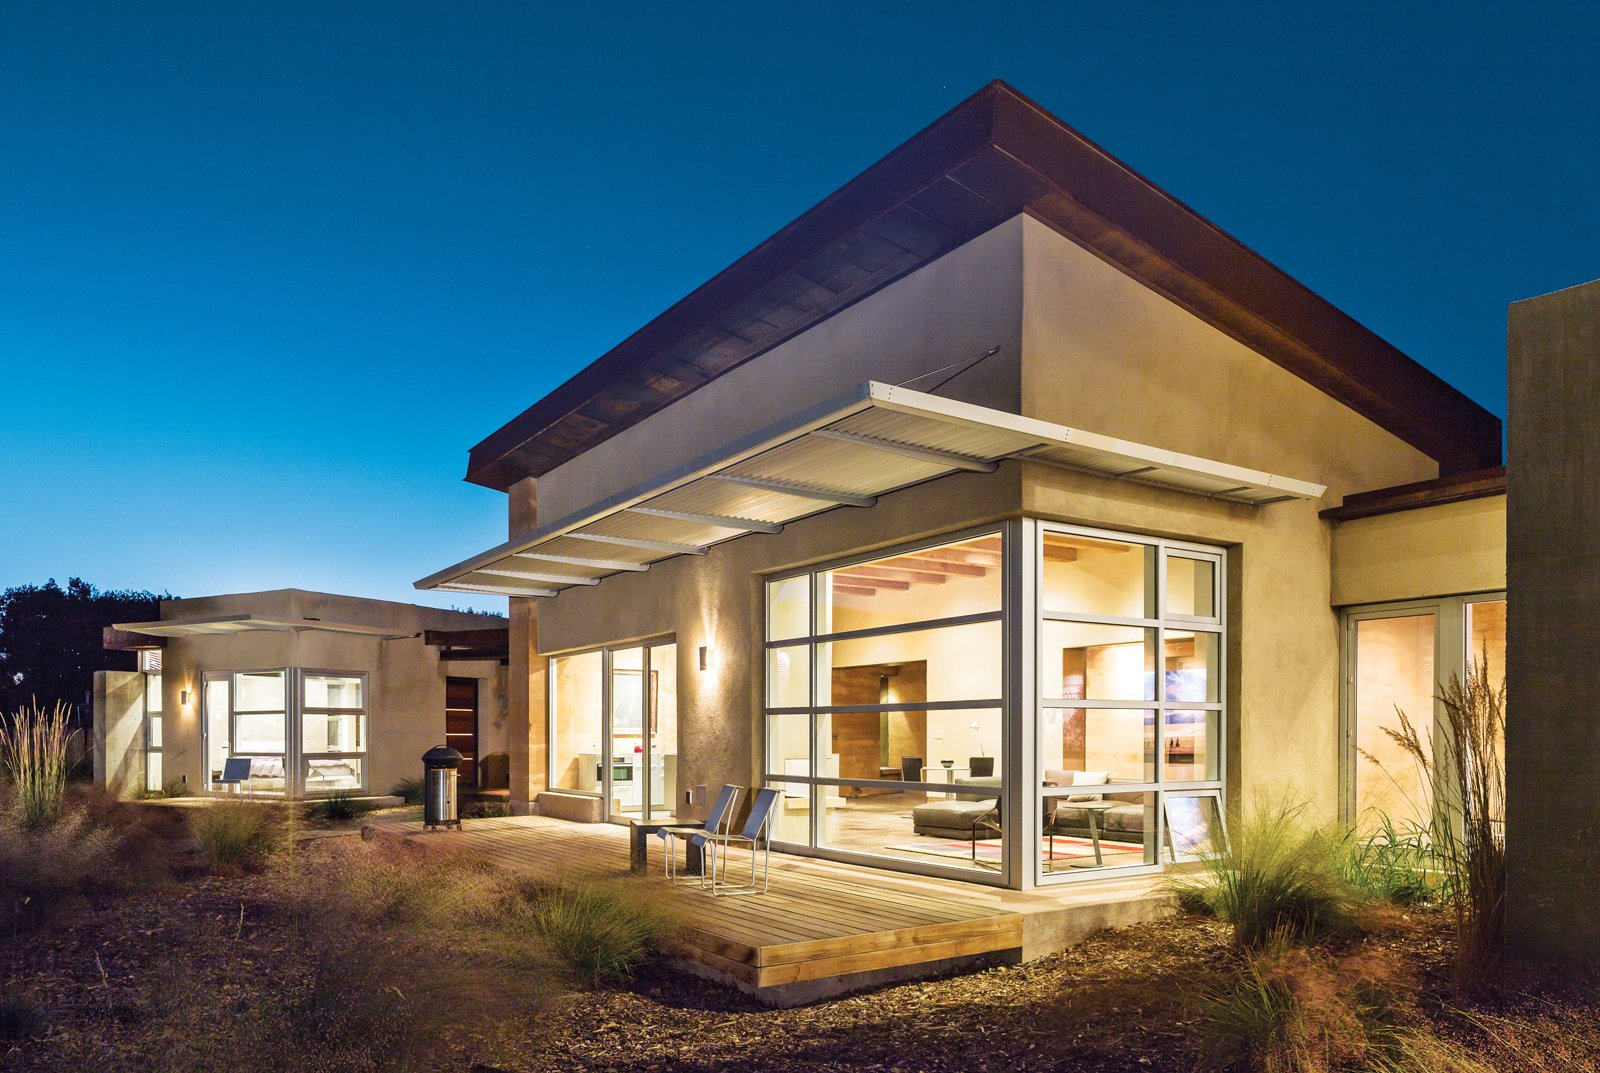 Exterior, House Building Type, and Stucco Siding Material Because the night air cools the walls in summer, the home has no air-conditioning—though daily highs often rise into the mid-90s and above. Photo by: Kirk Gittings  Photo 4 of 5 in A Sustainable Rammed Earth Home in New Mexico